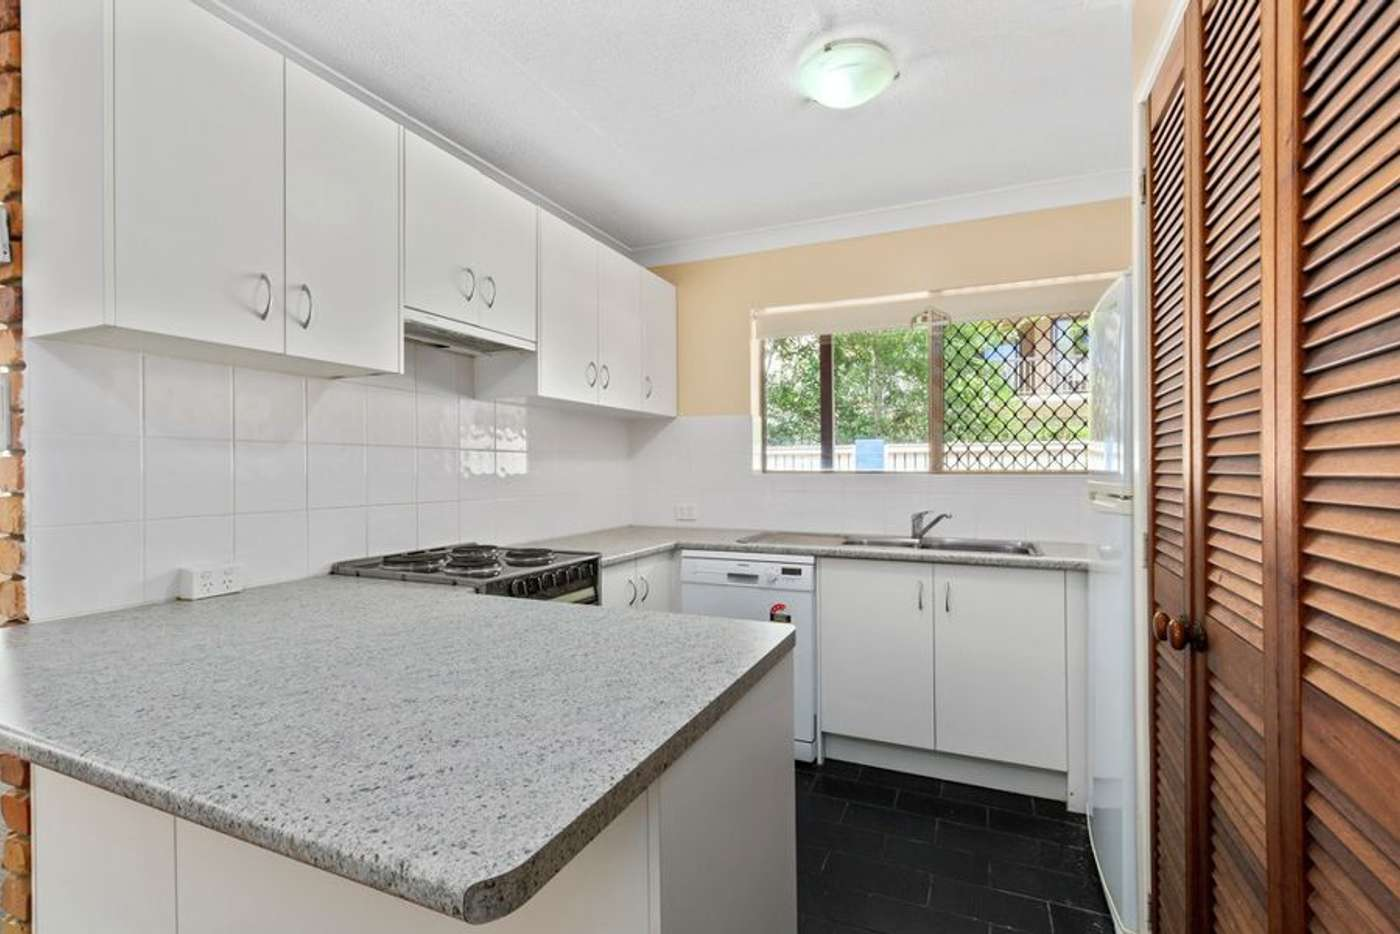 Main view of Homely unit listing, 3/14 Armadale Street, St Lucia QLD 4067